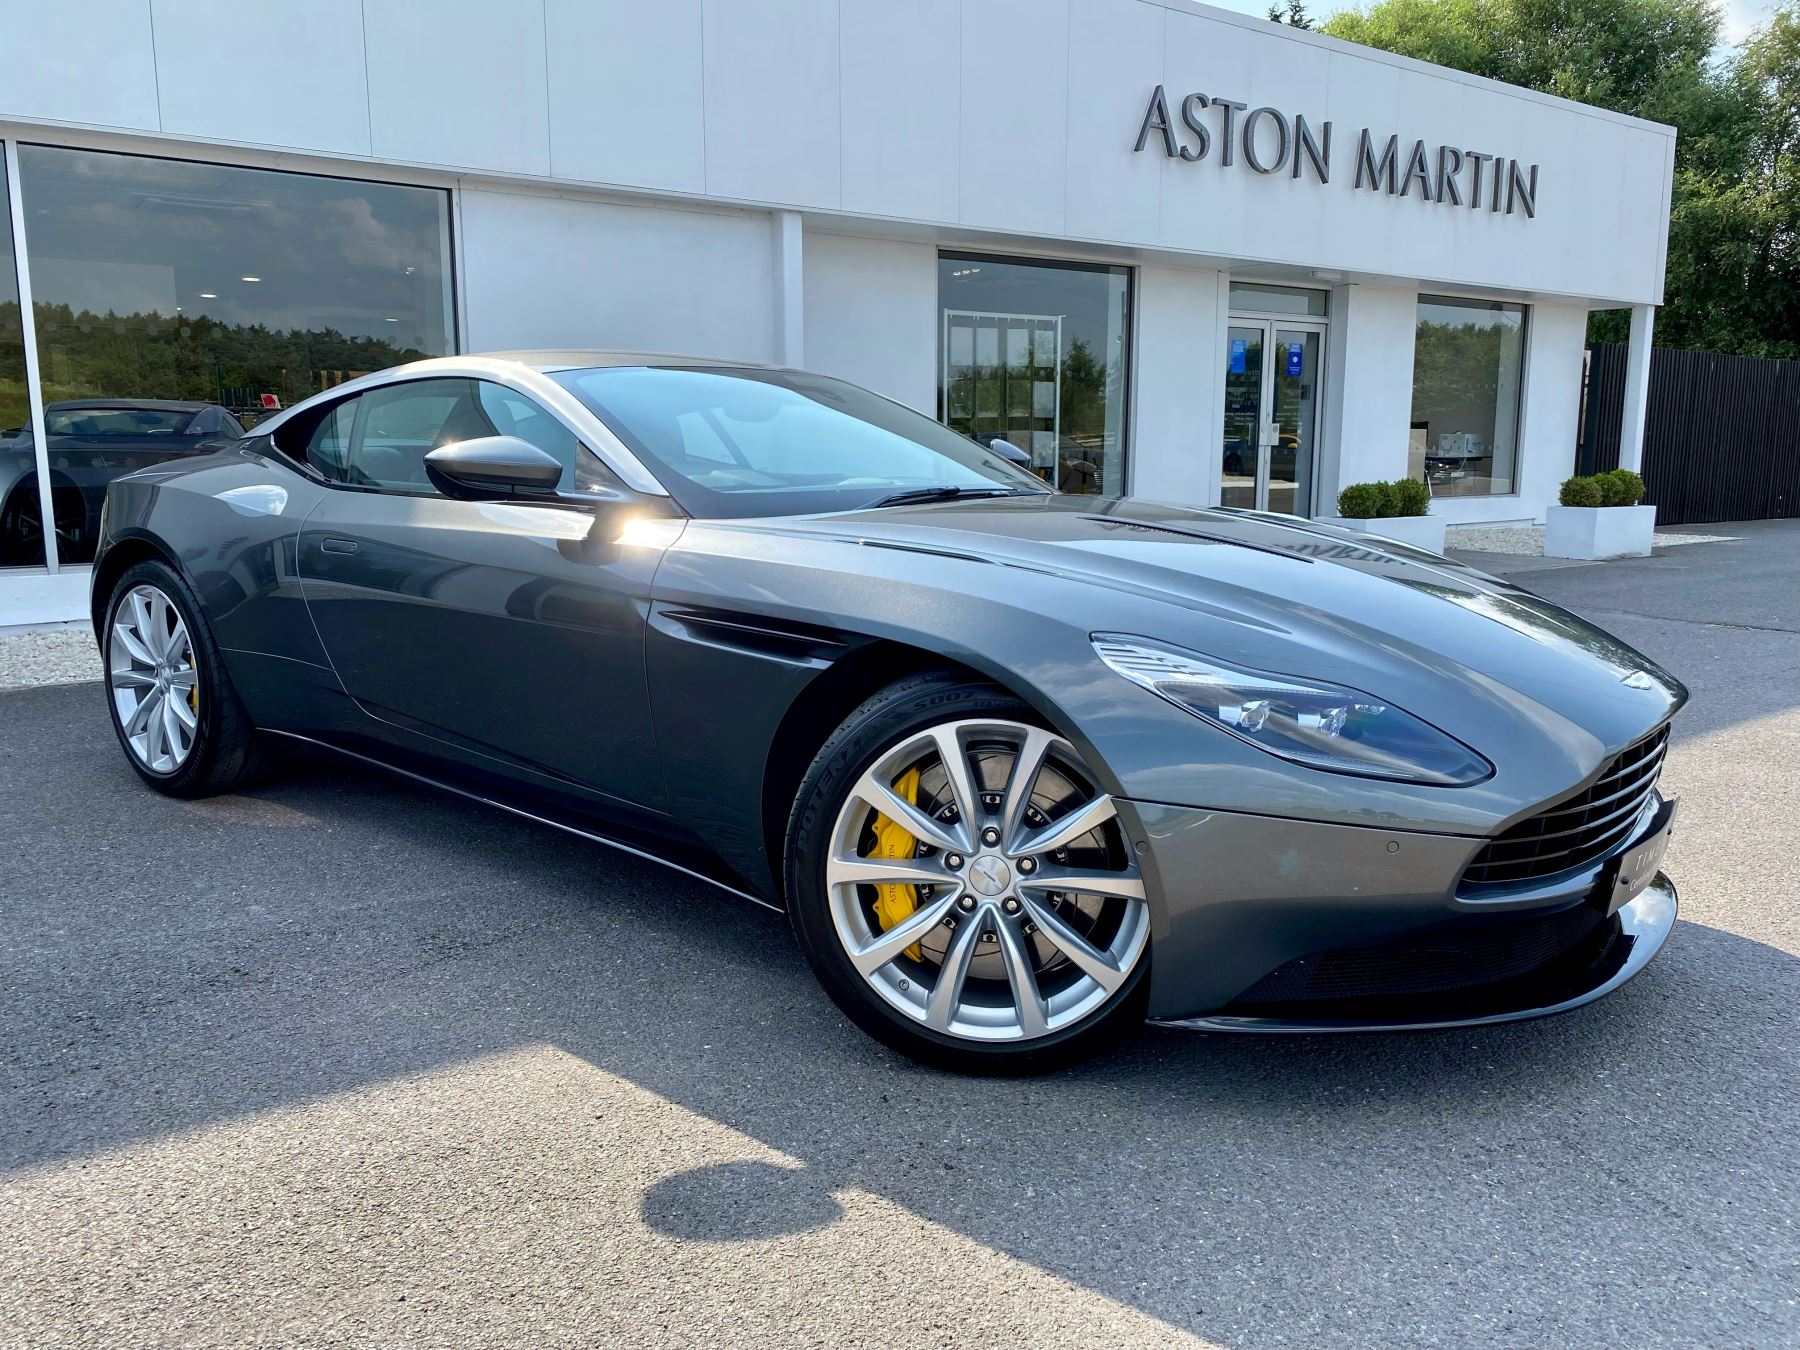 Aston Martin DB11 V12 2dr Touchtronic, Magnetic Silver And Pure Black Leather Upholstery, Two Owners From New. 5.2 Automatic 3 door Coupe (2018) image